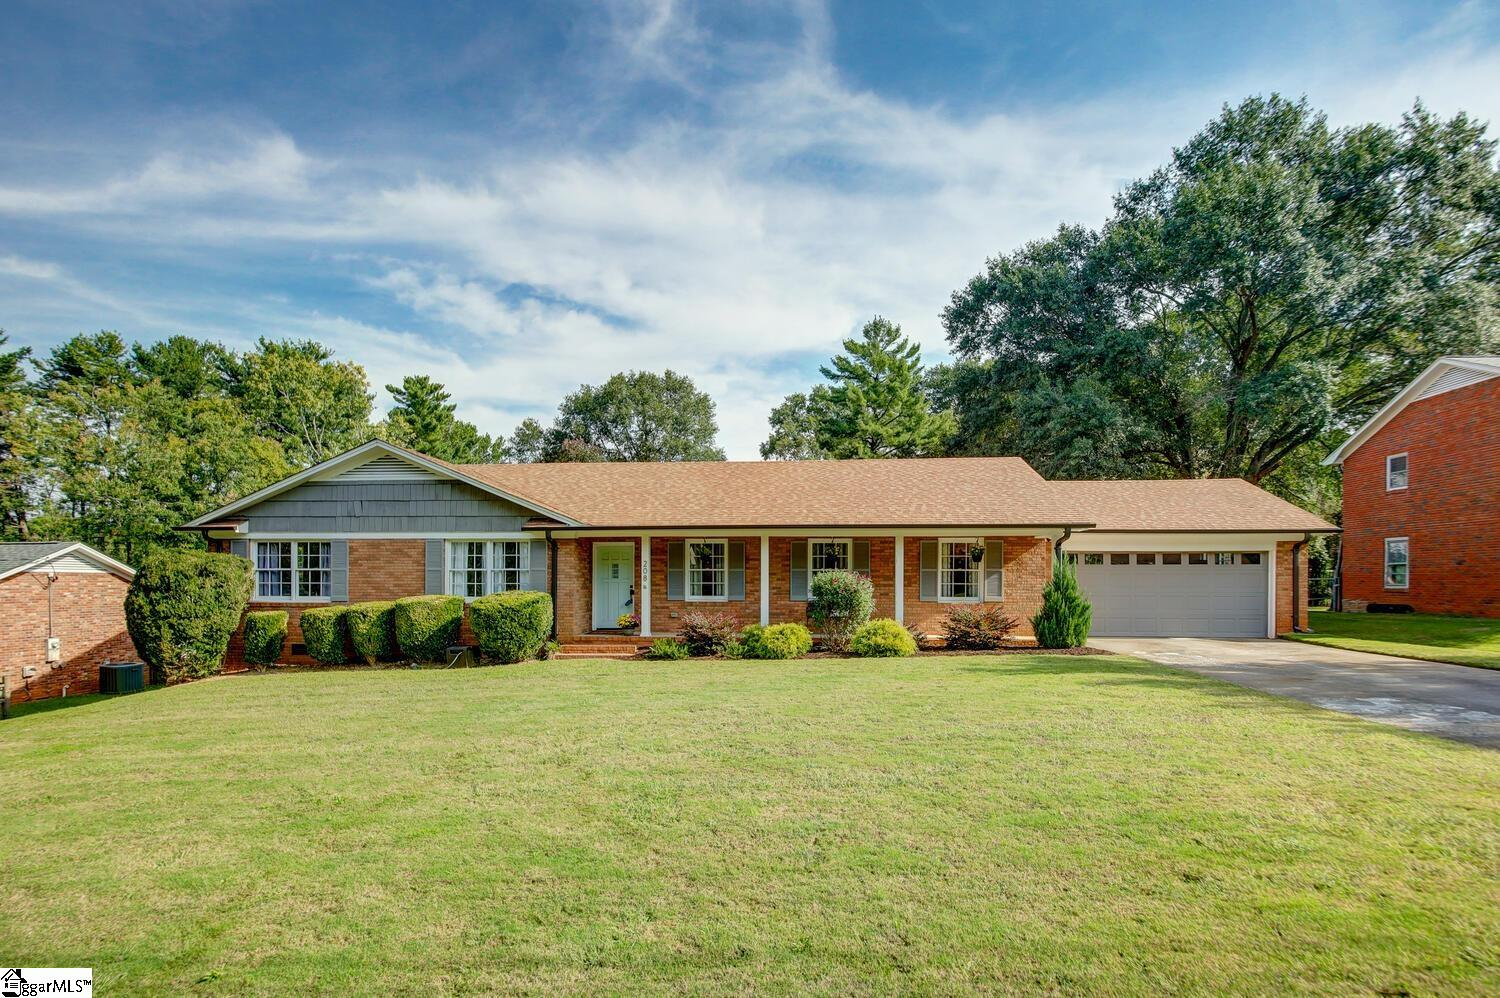 208 Imperial, Greenville, SC 29615